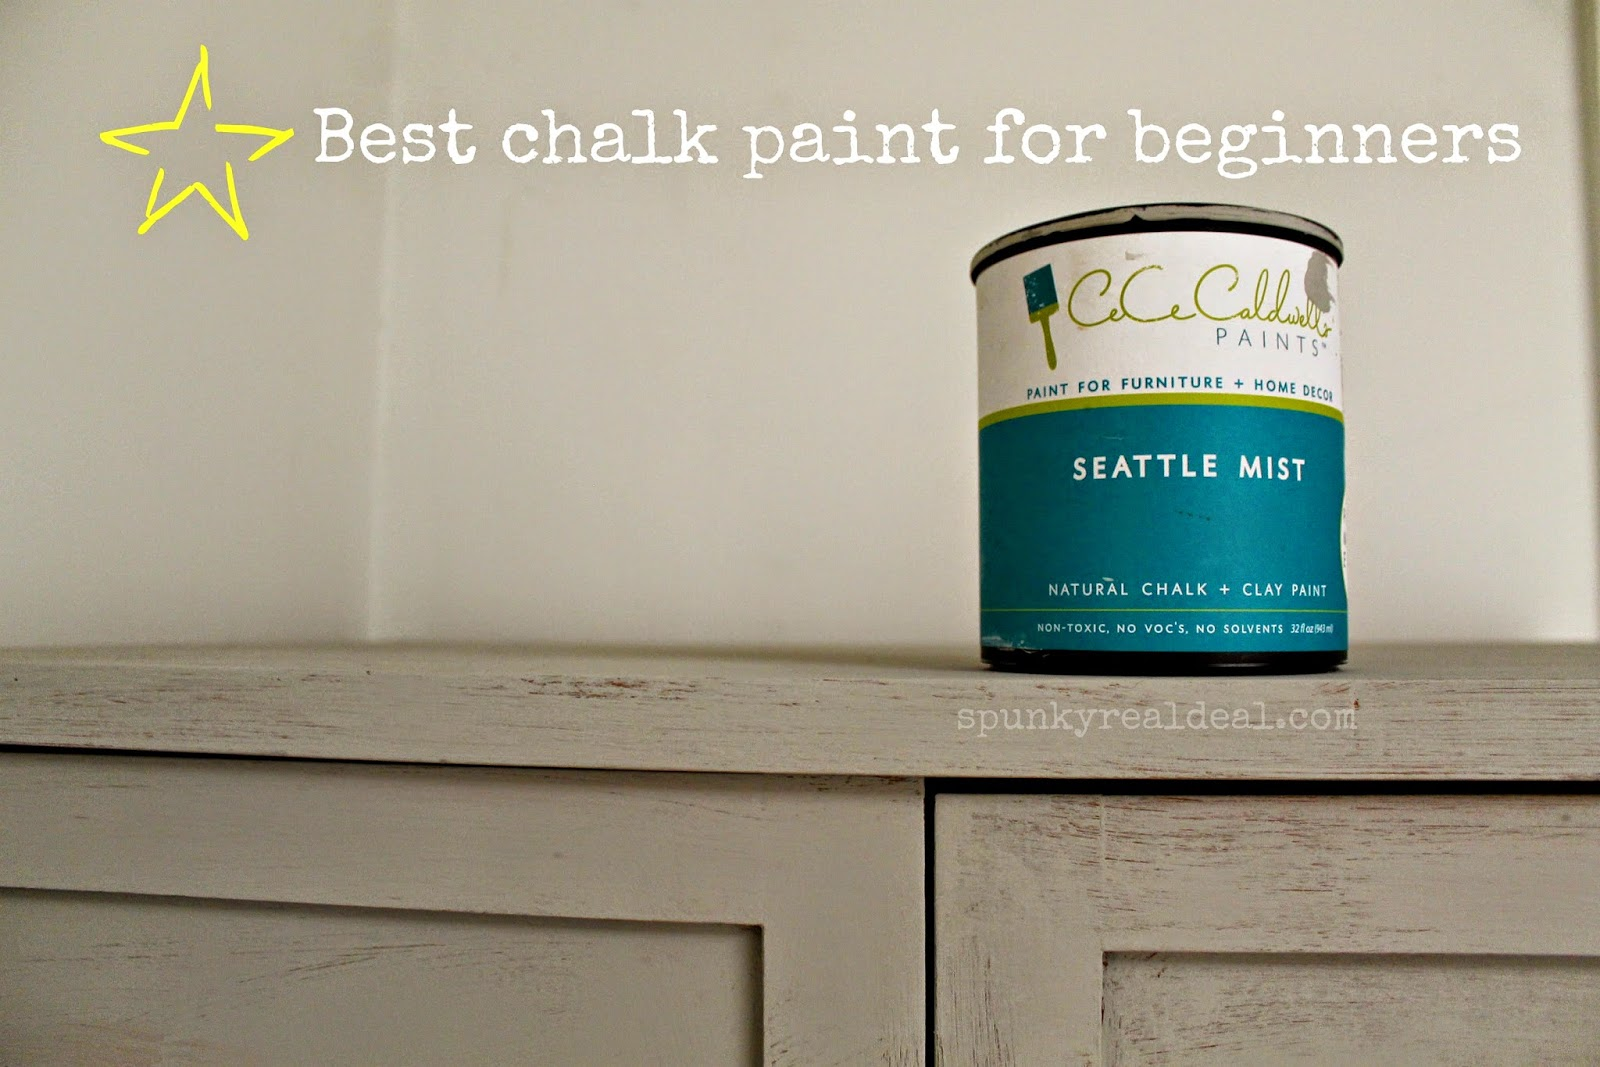 Spunky Real Deals: Which chalk paint is the best? #chalkpaint